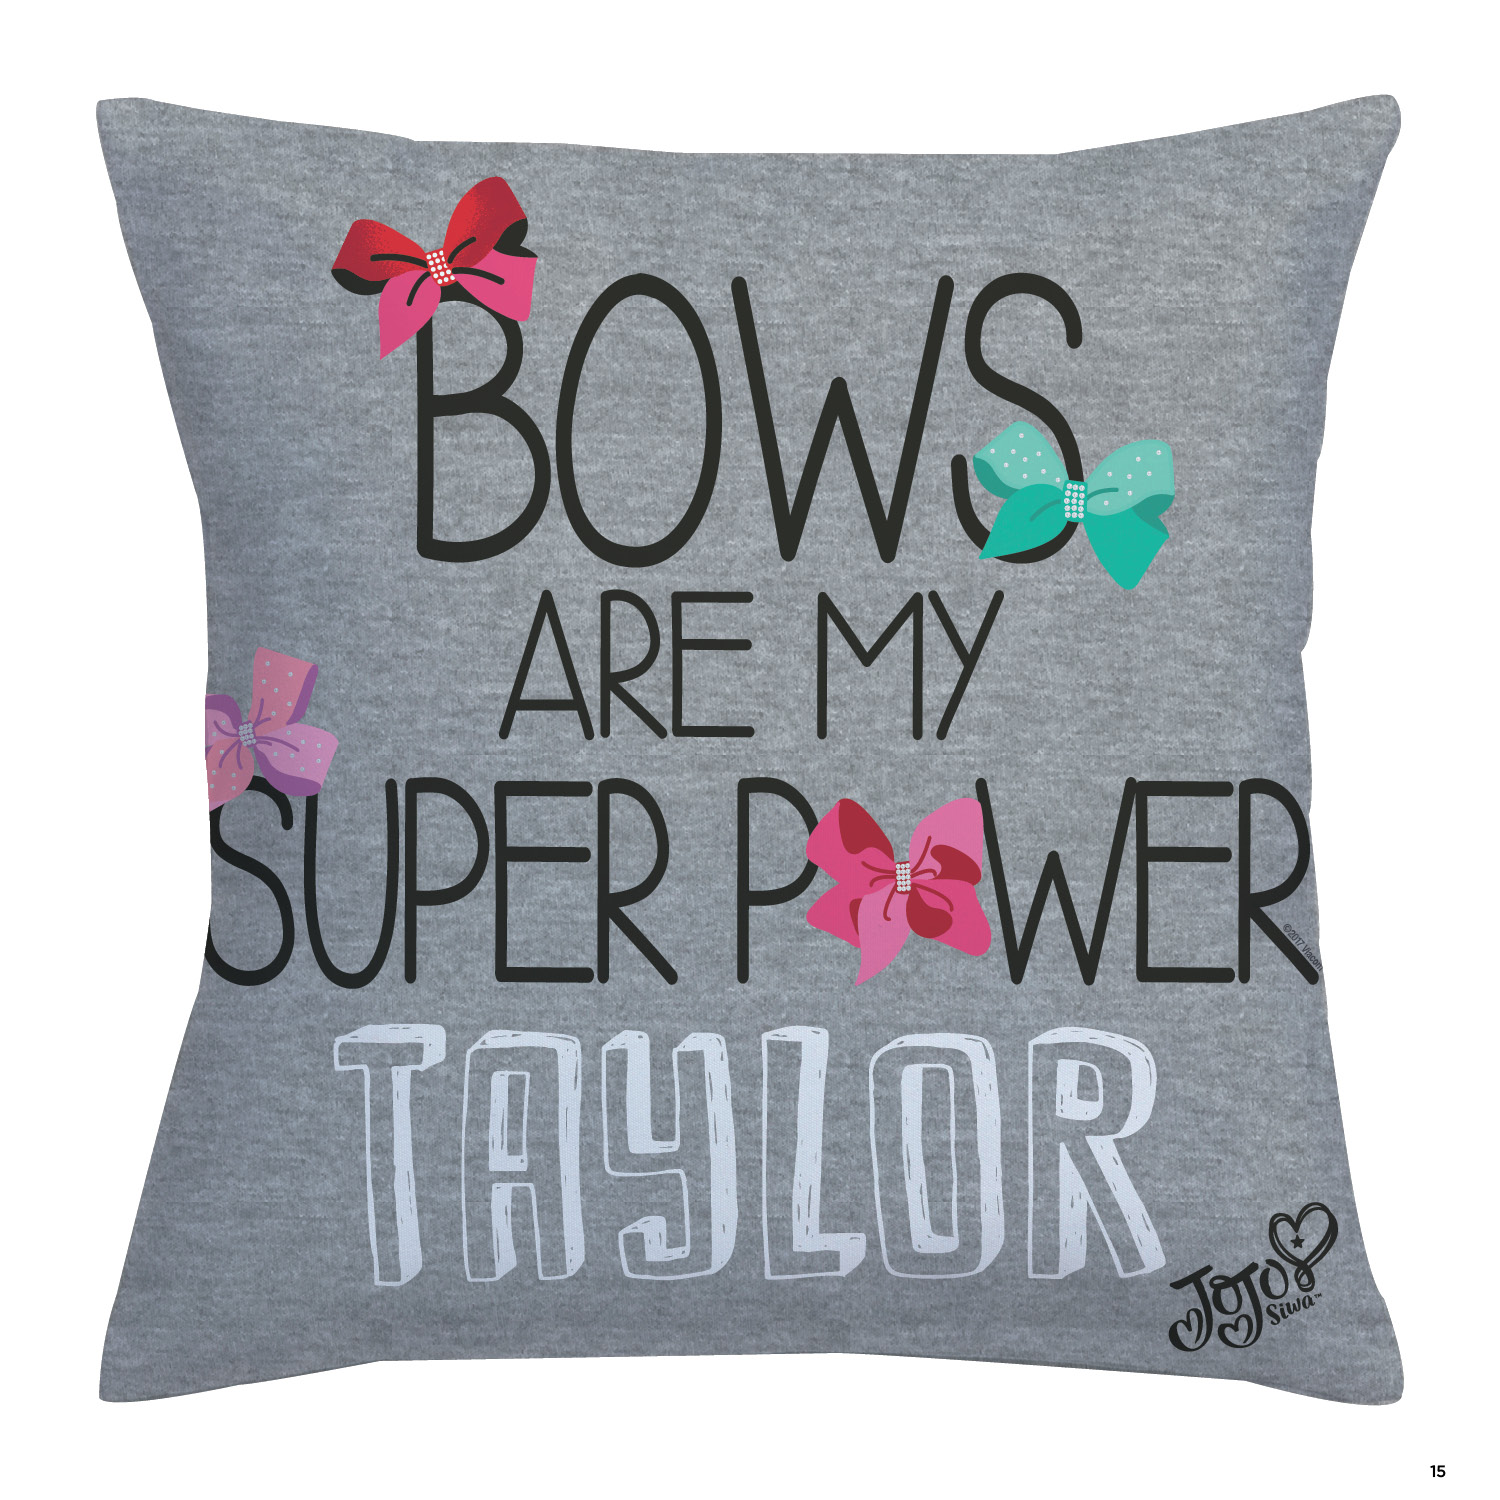 Personalized Throw Pillow - JoJo Siwa Bows are My Super Power